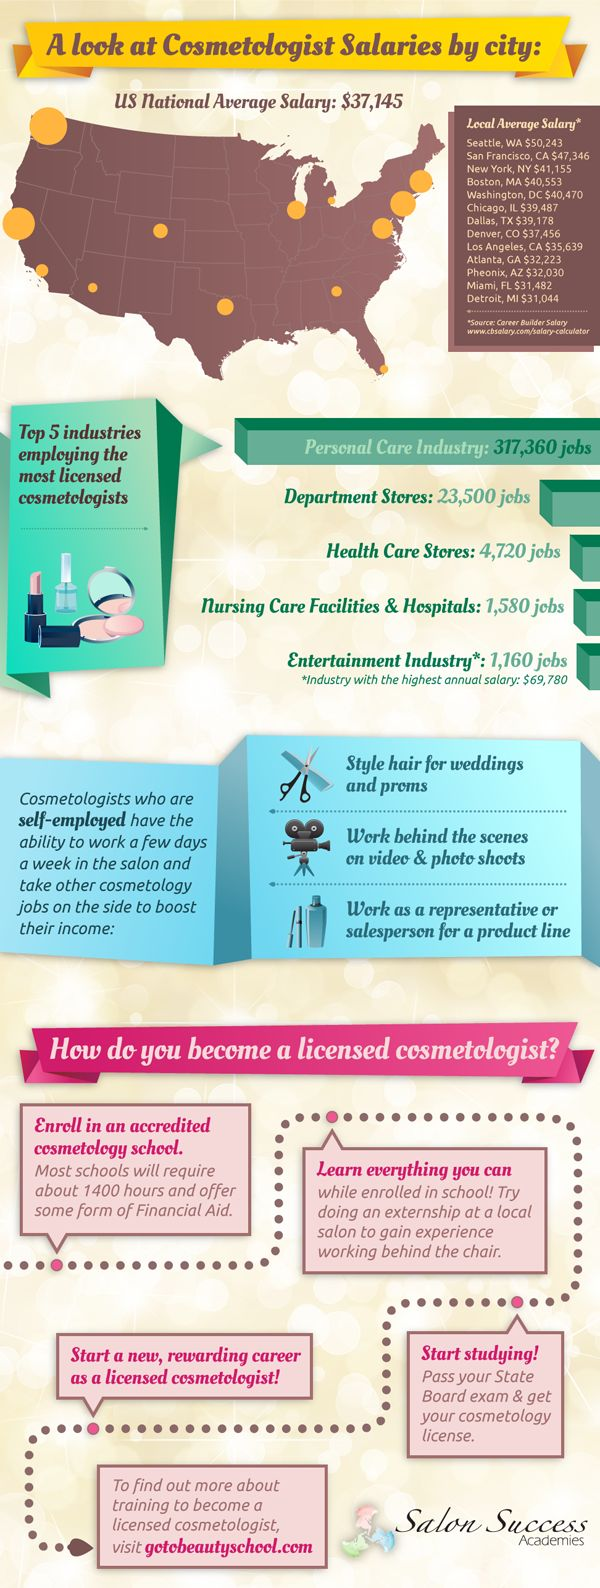 Behind the chair ecards - Cosmetology Salary Guide Infographic Check Out What Your Potential Salary Would Be As A Licensed